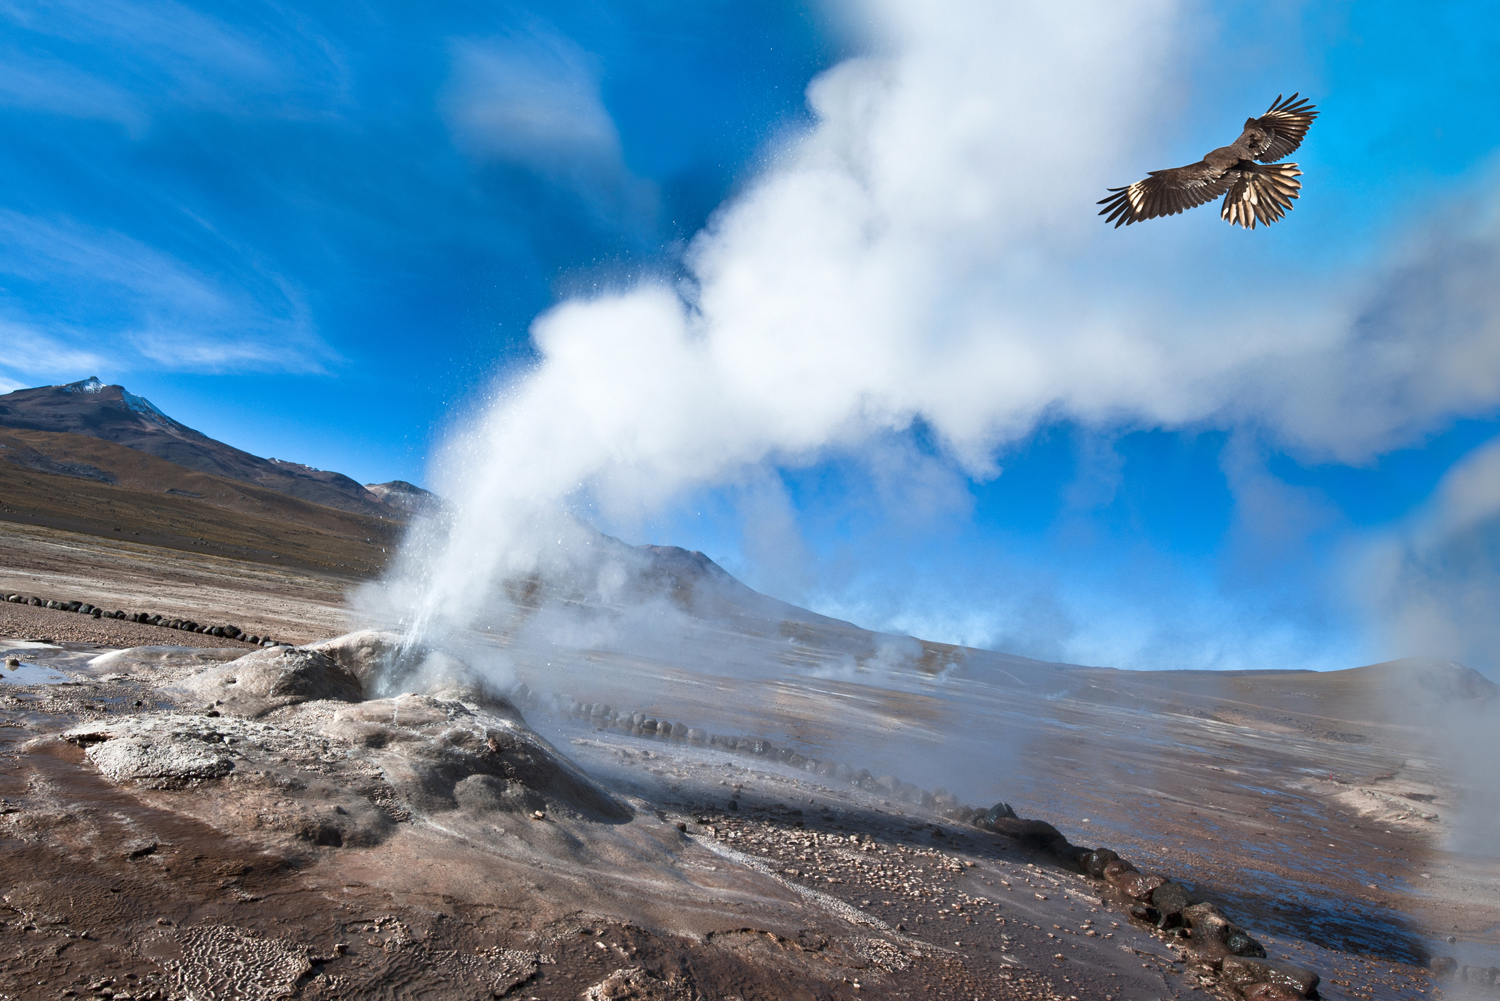 Iceland Holiday Northern Lights Blue Lagoon Geysers Reykjavik Short Break Weekend Travel moreover 54 Take In Sunrise At El Tatio Geysers In Chile furthermore Futuristic House Designs additionally 7956217826 additionally Geothermal Douche. on geothermal